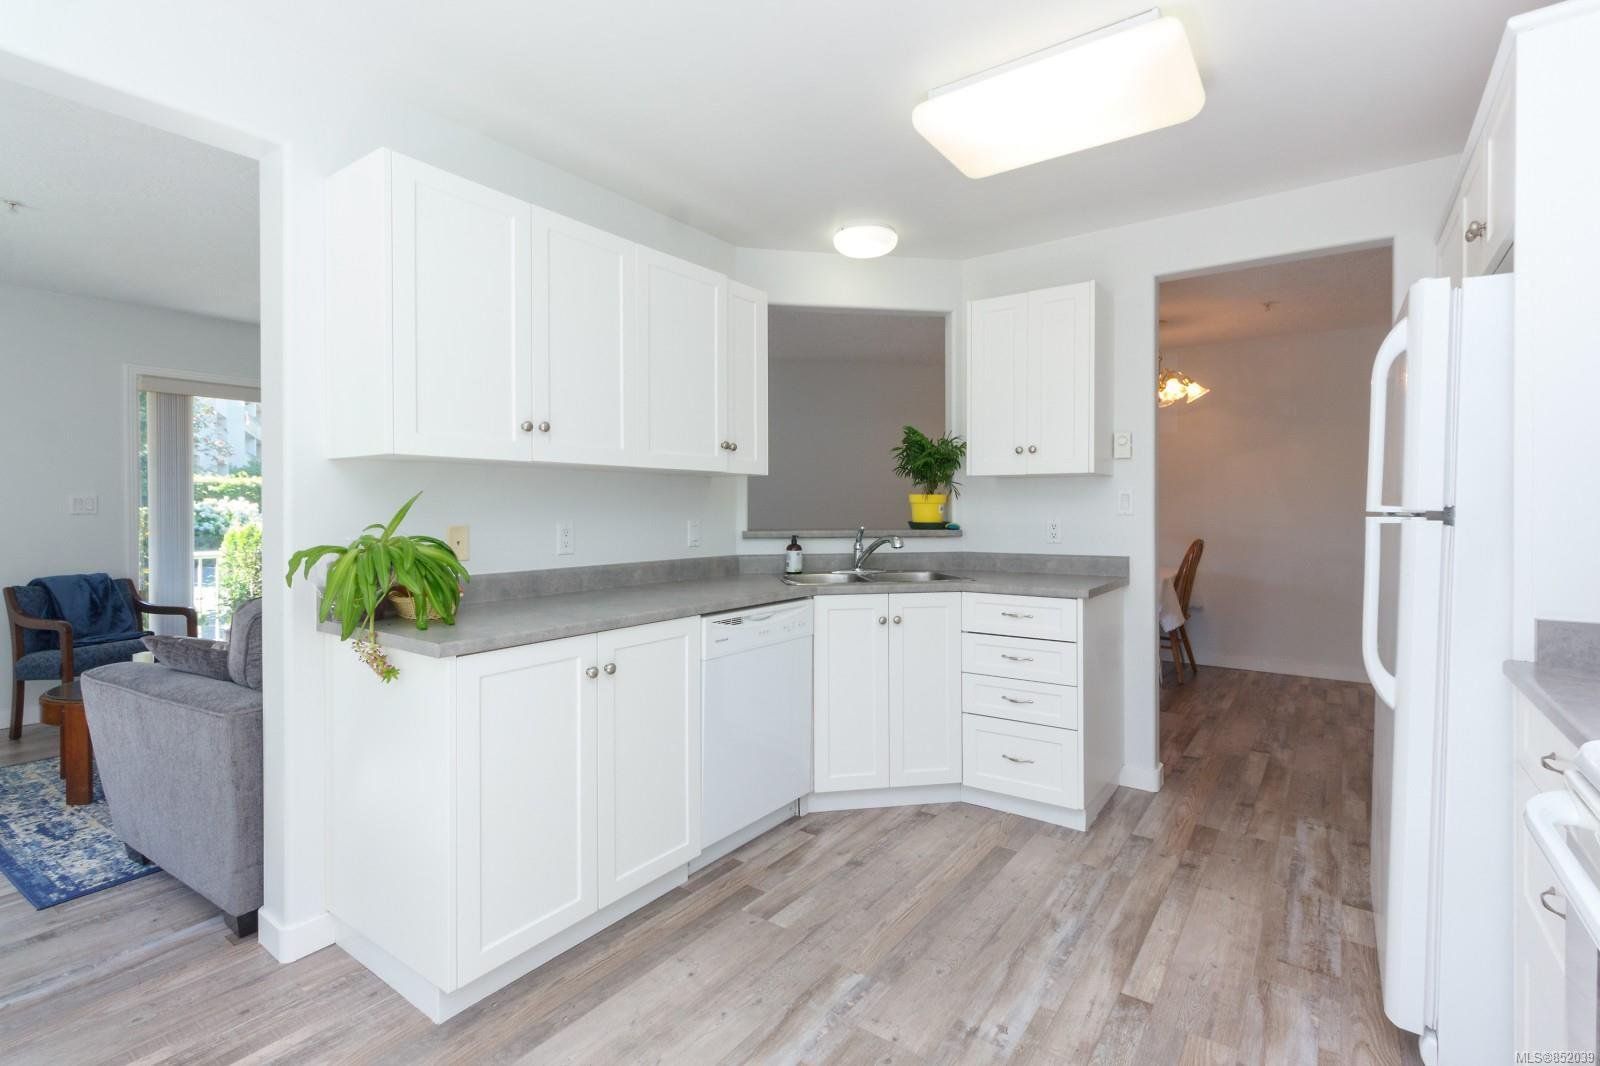 Photo 11: Photos: 109 1240 Verdier Ave in : CS Brentwood Bay Condo for sale (Central Saanich)  : MLS®# 852039